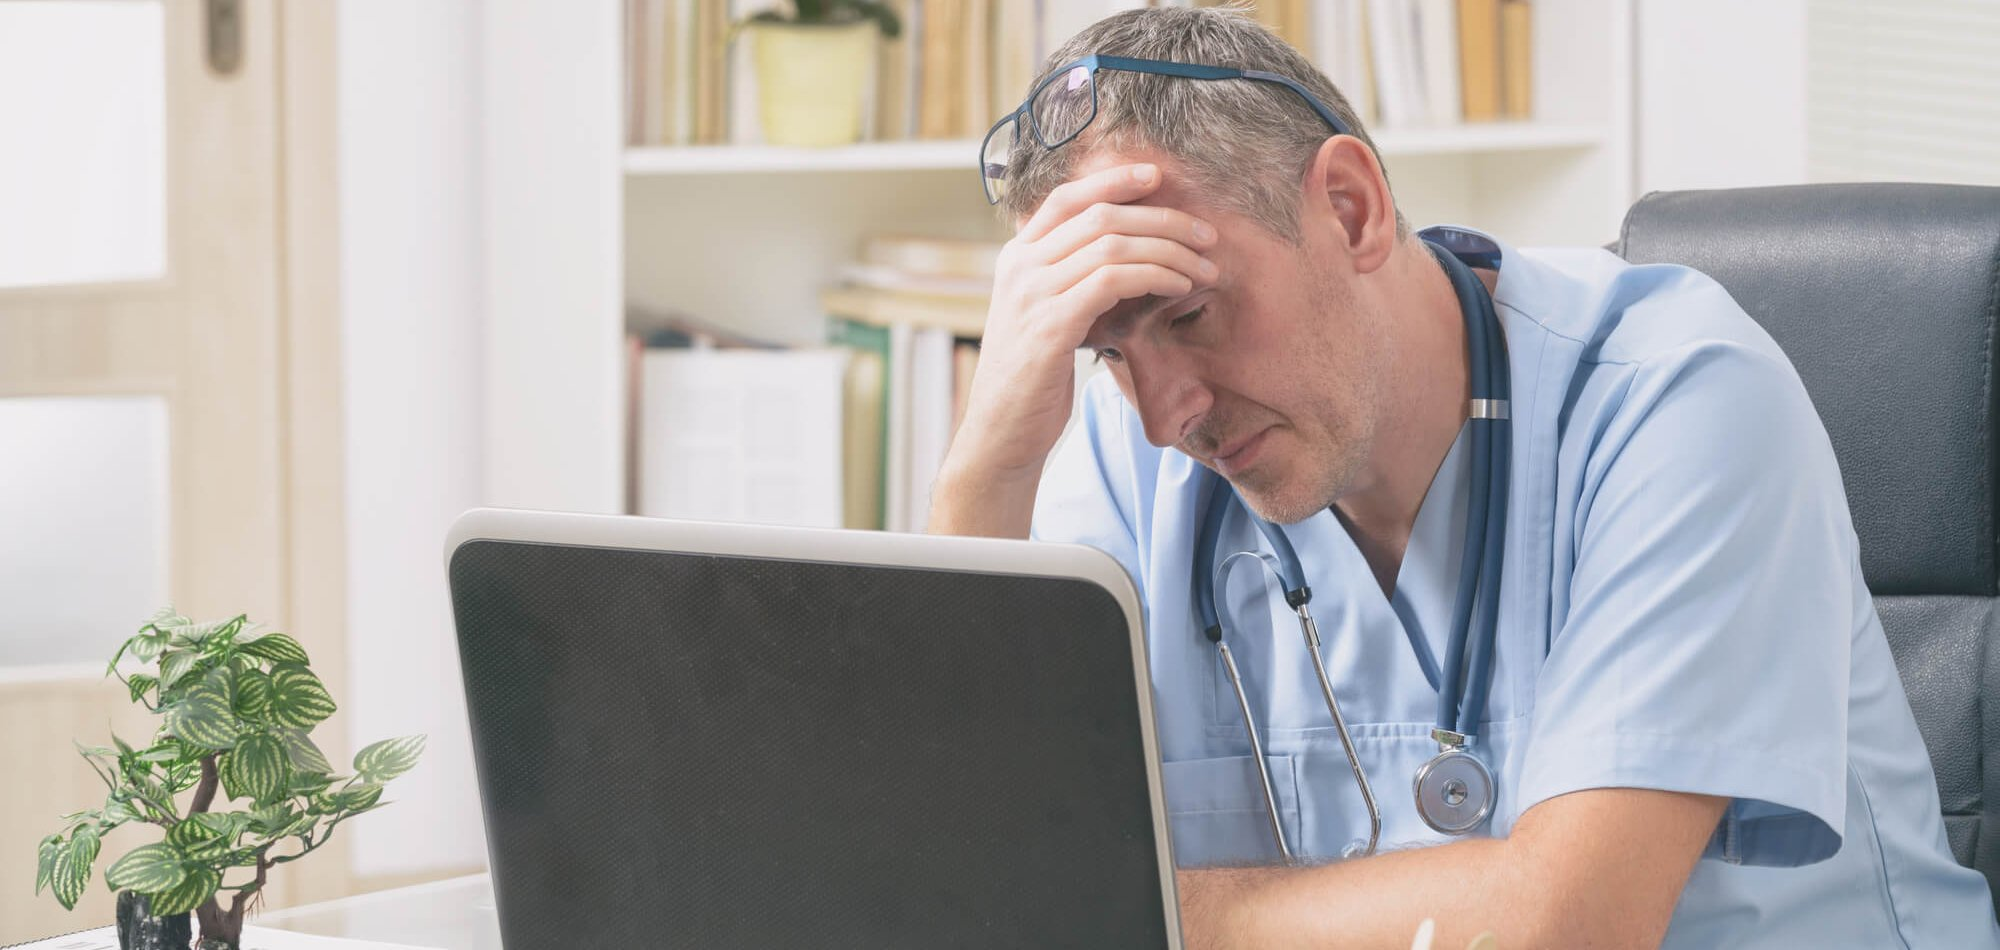 Doctor at Computer with Hand on Head